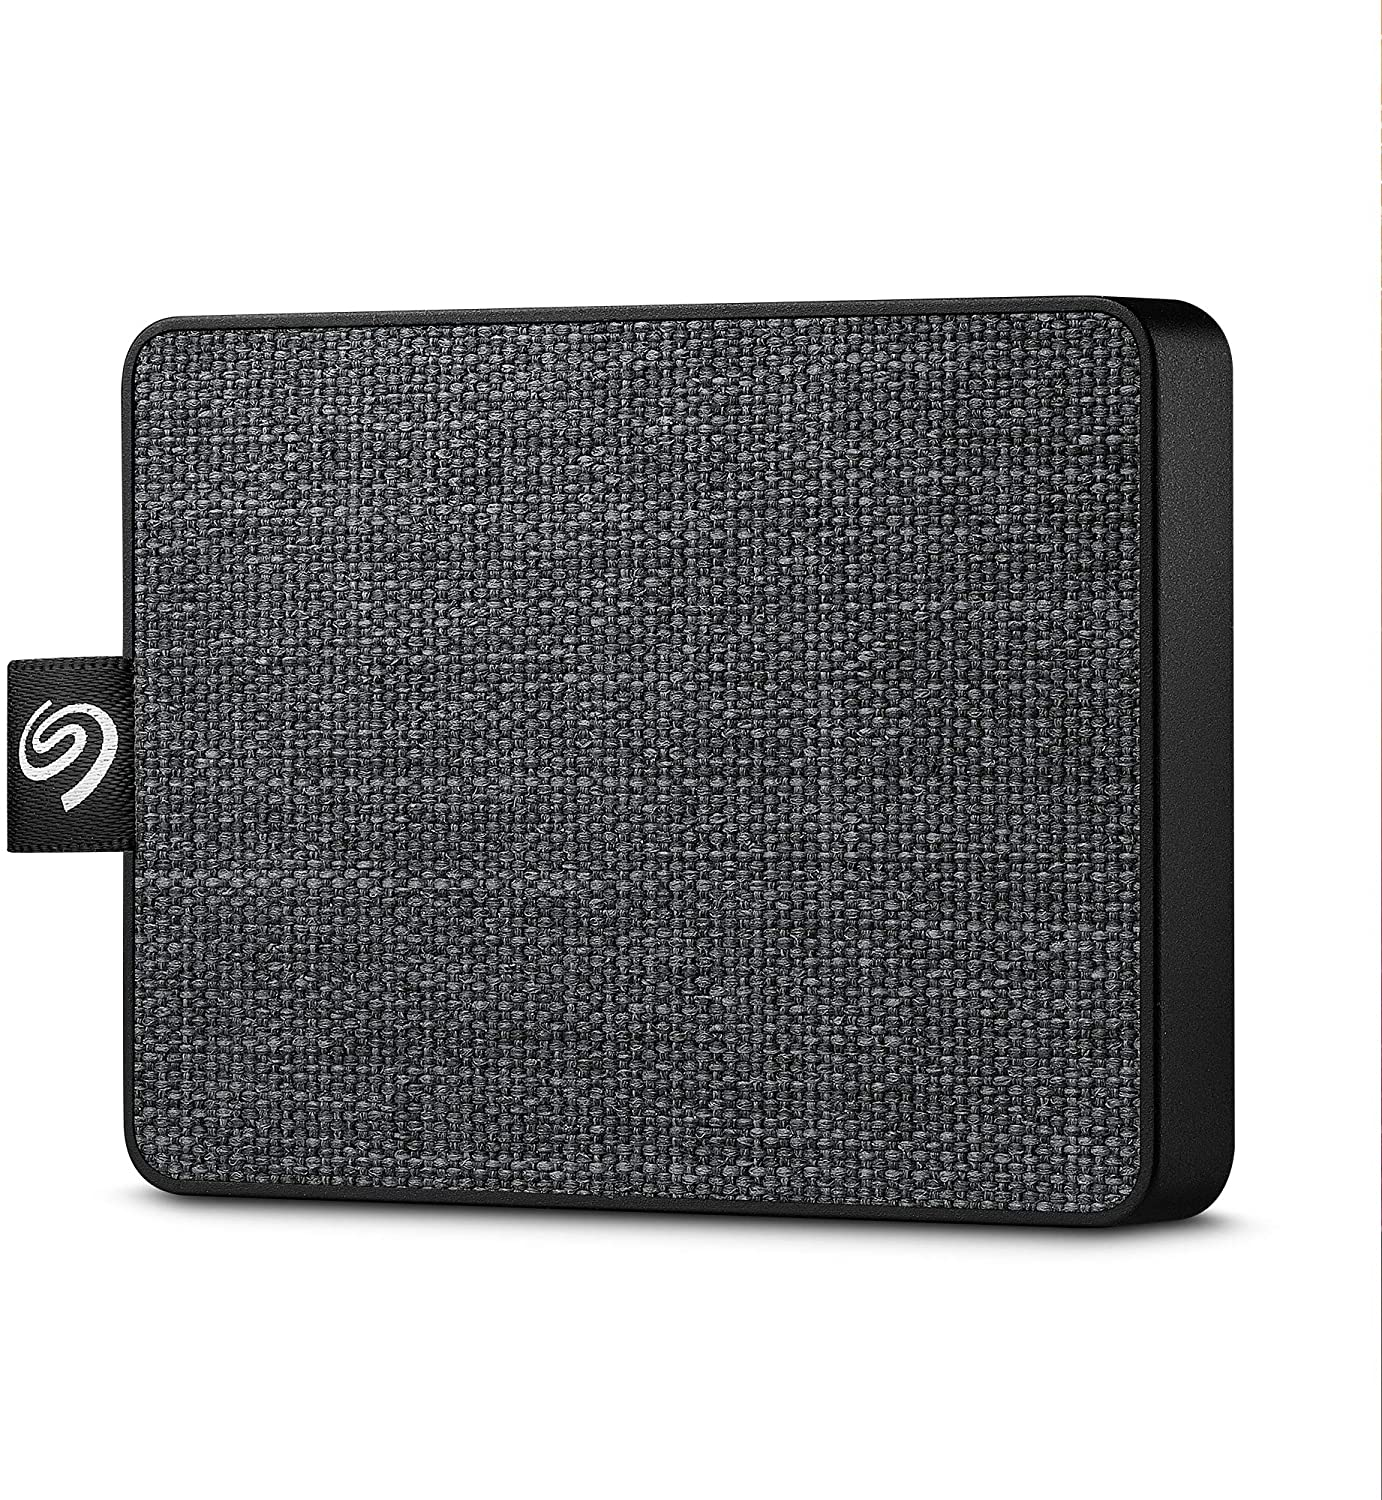 Disco duro externo Seagate One Touch SSD